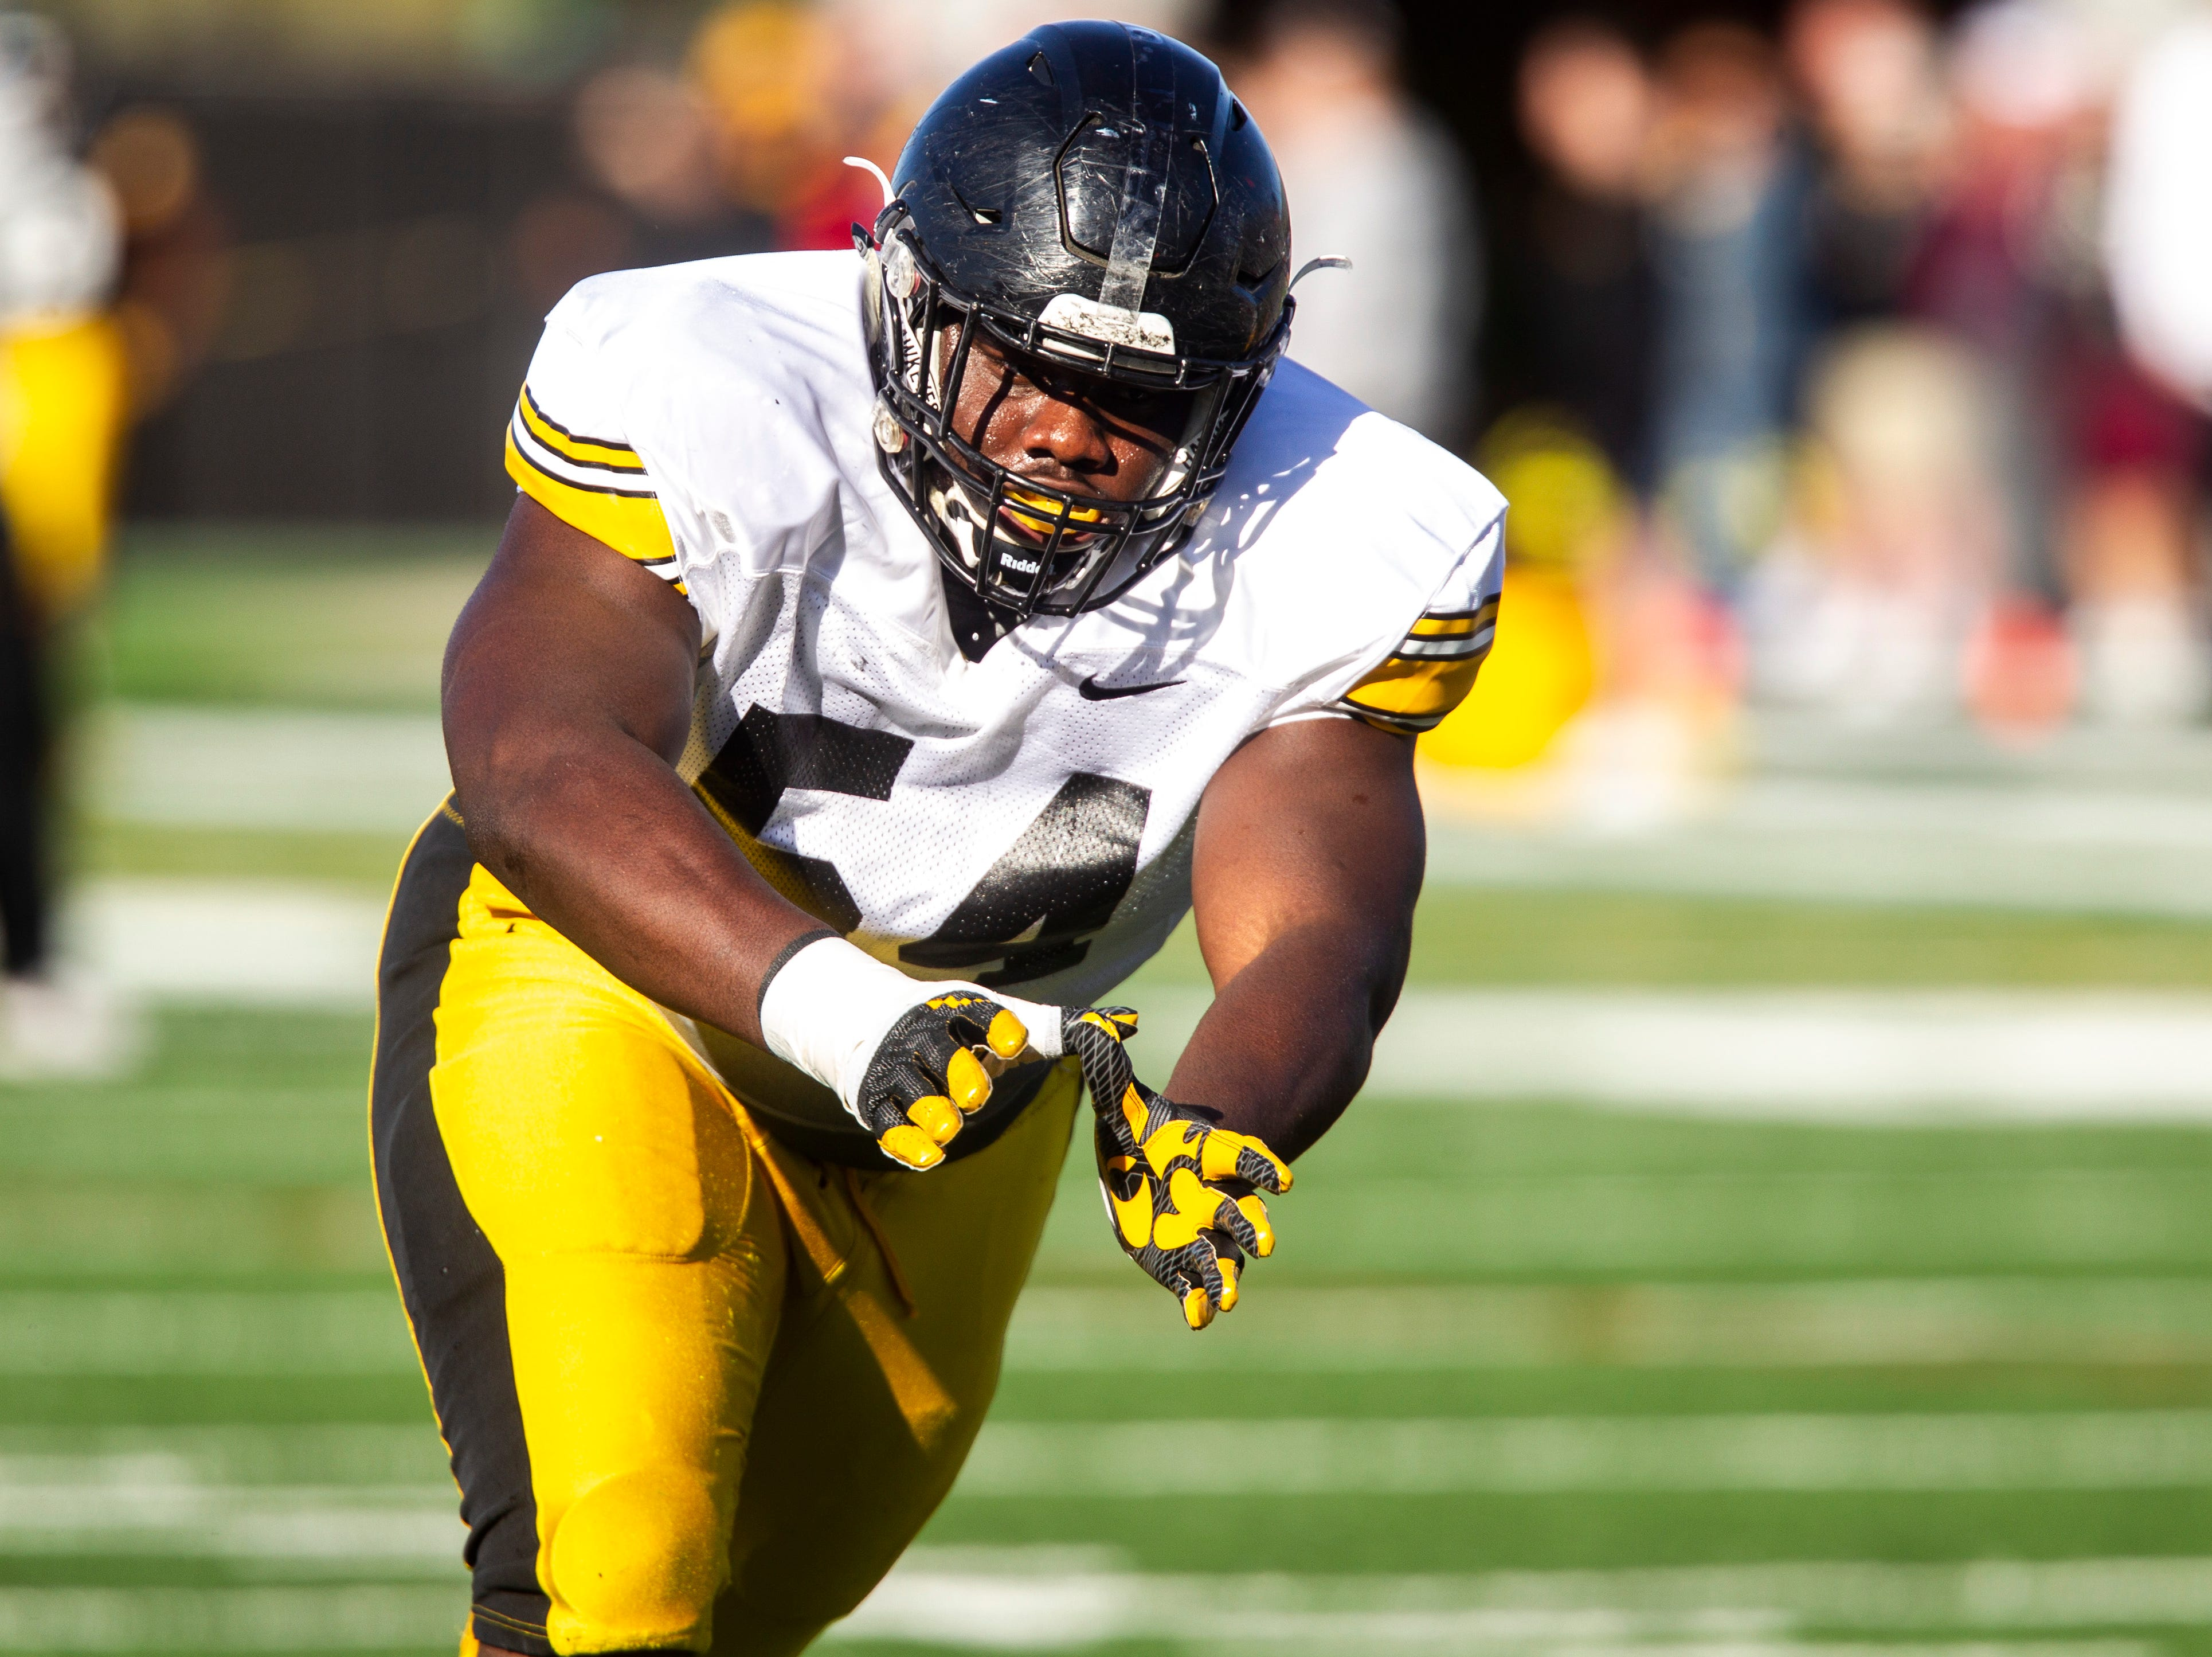 Iowa defensive tackle Daviyon Nixon runs a drill during the final spring football practice, Friday, April 26, 2019, at the University of Iowa outdoor practice facility in Iowa City, Iowa.